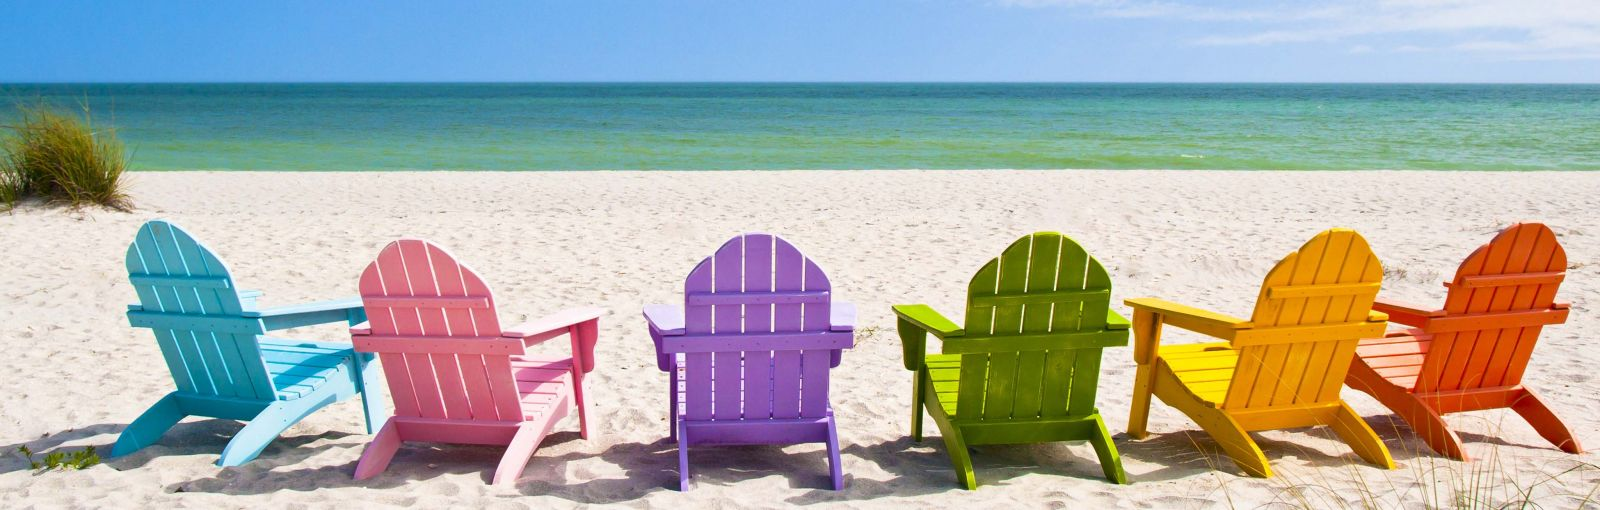 Different colored beach chairs on a beach